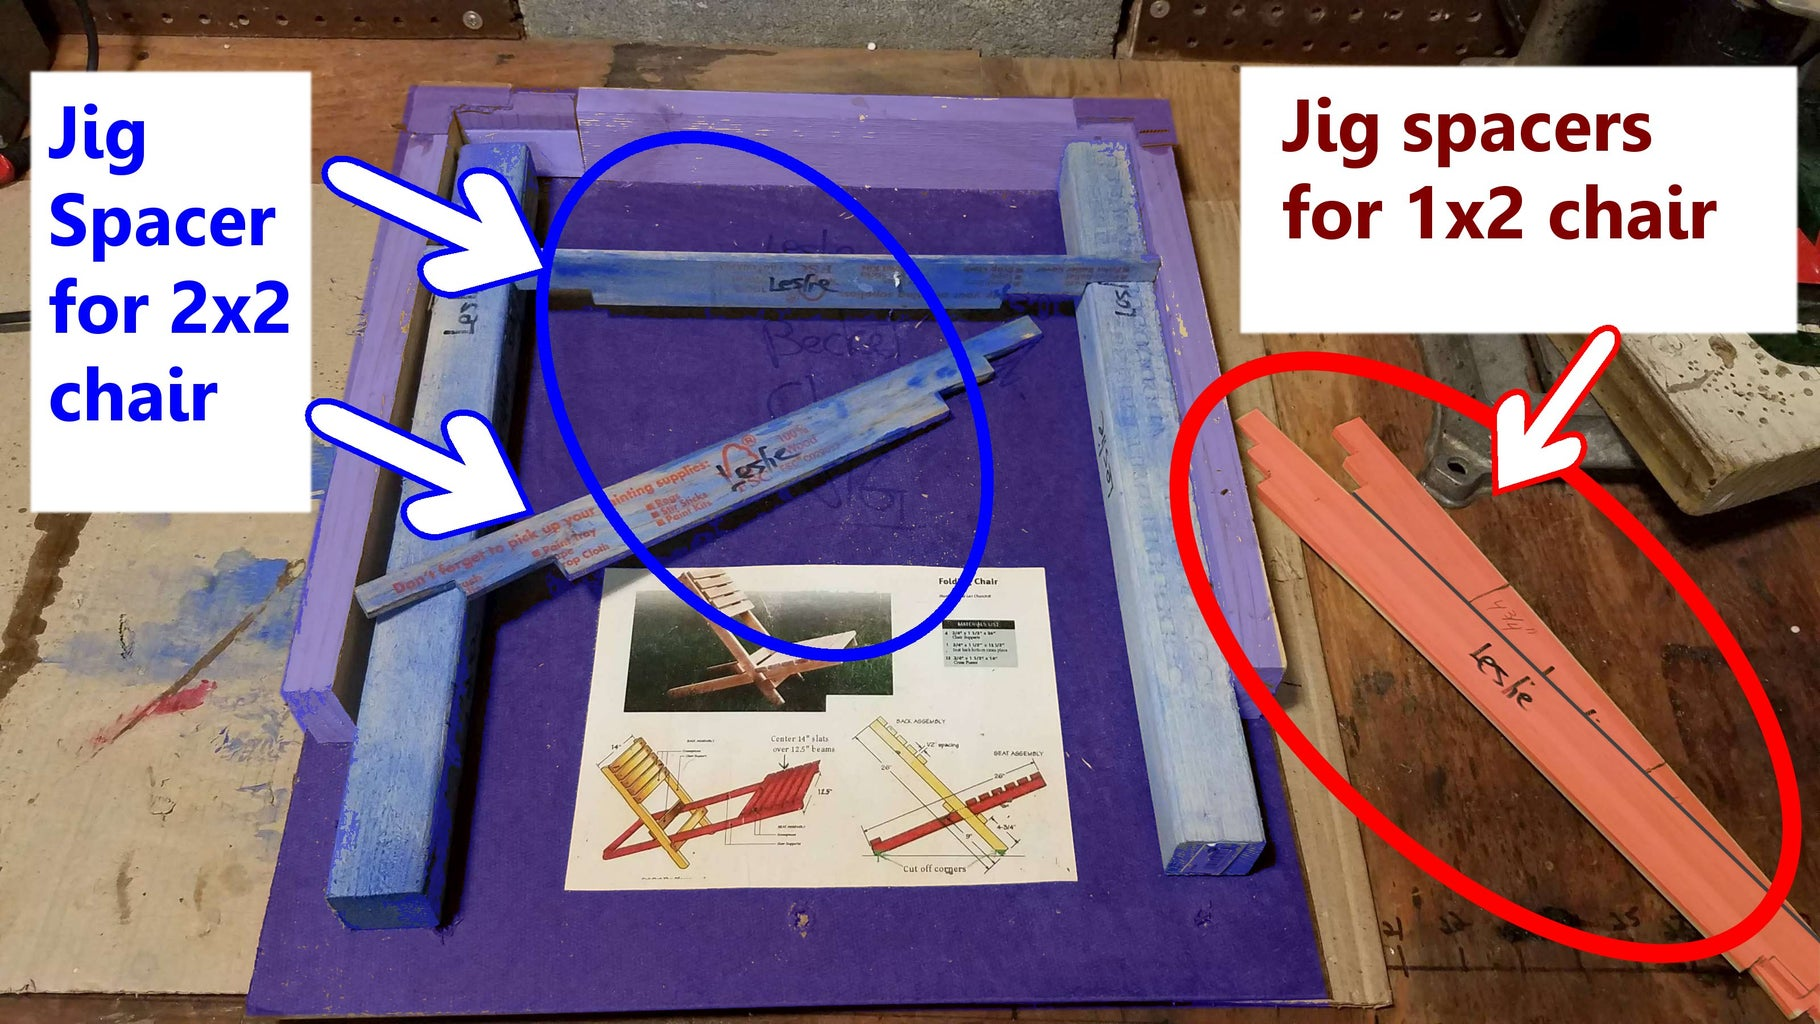 Let's Get the Supplies, and Start With Making a Jig